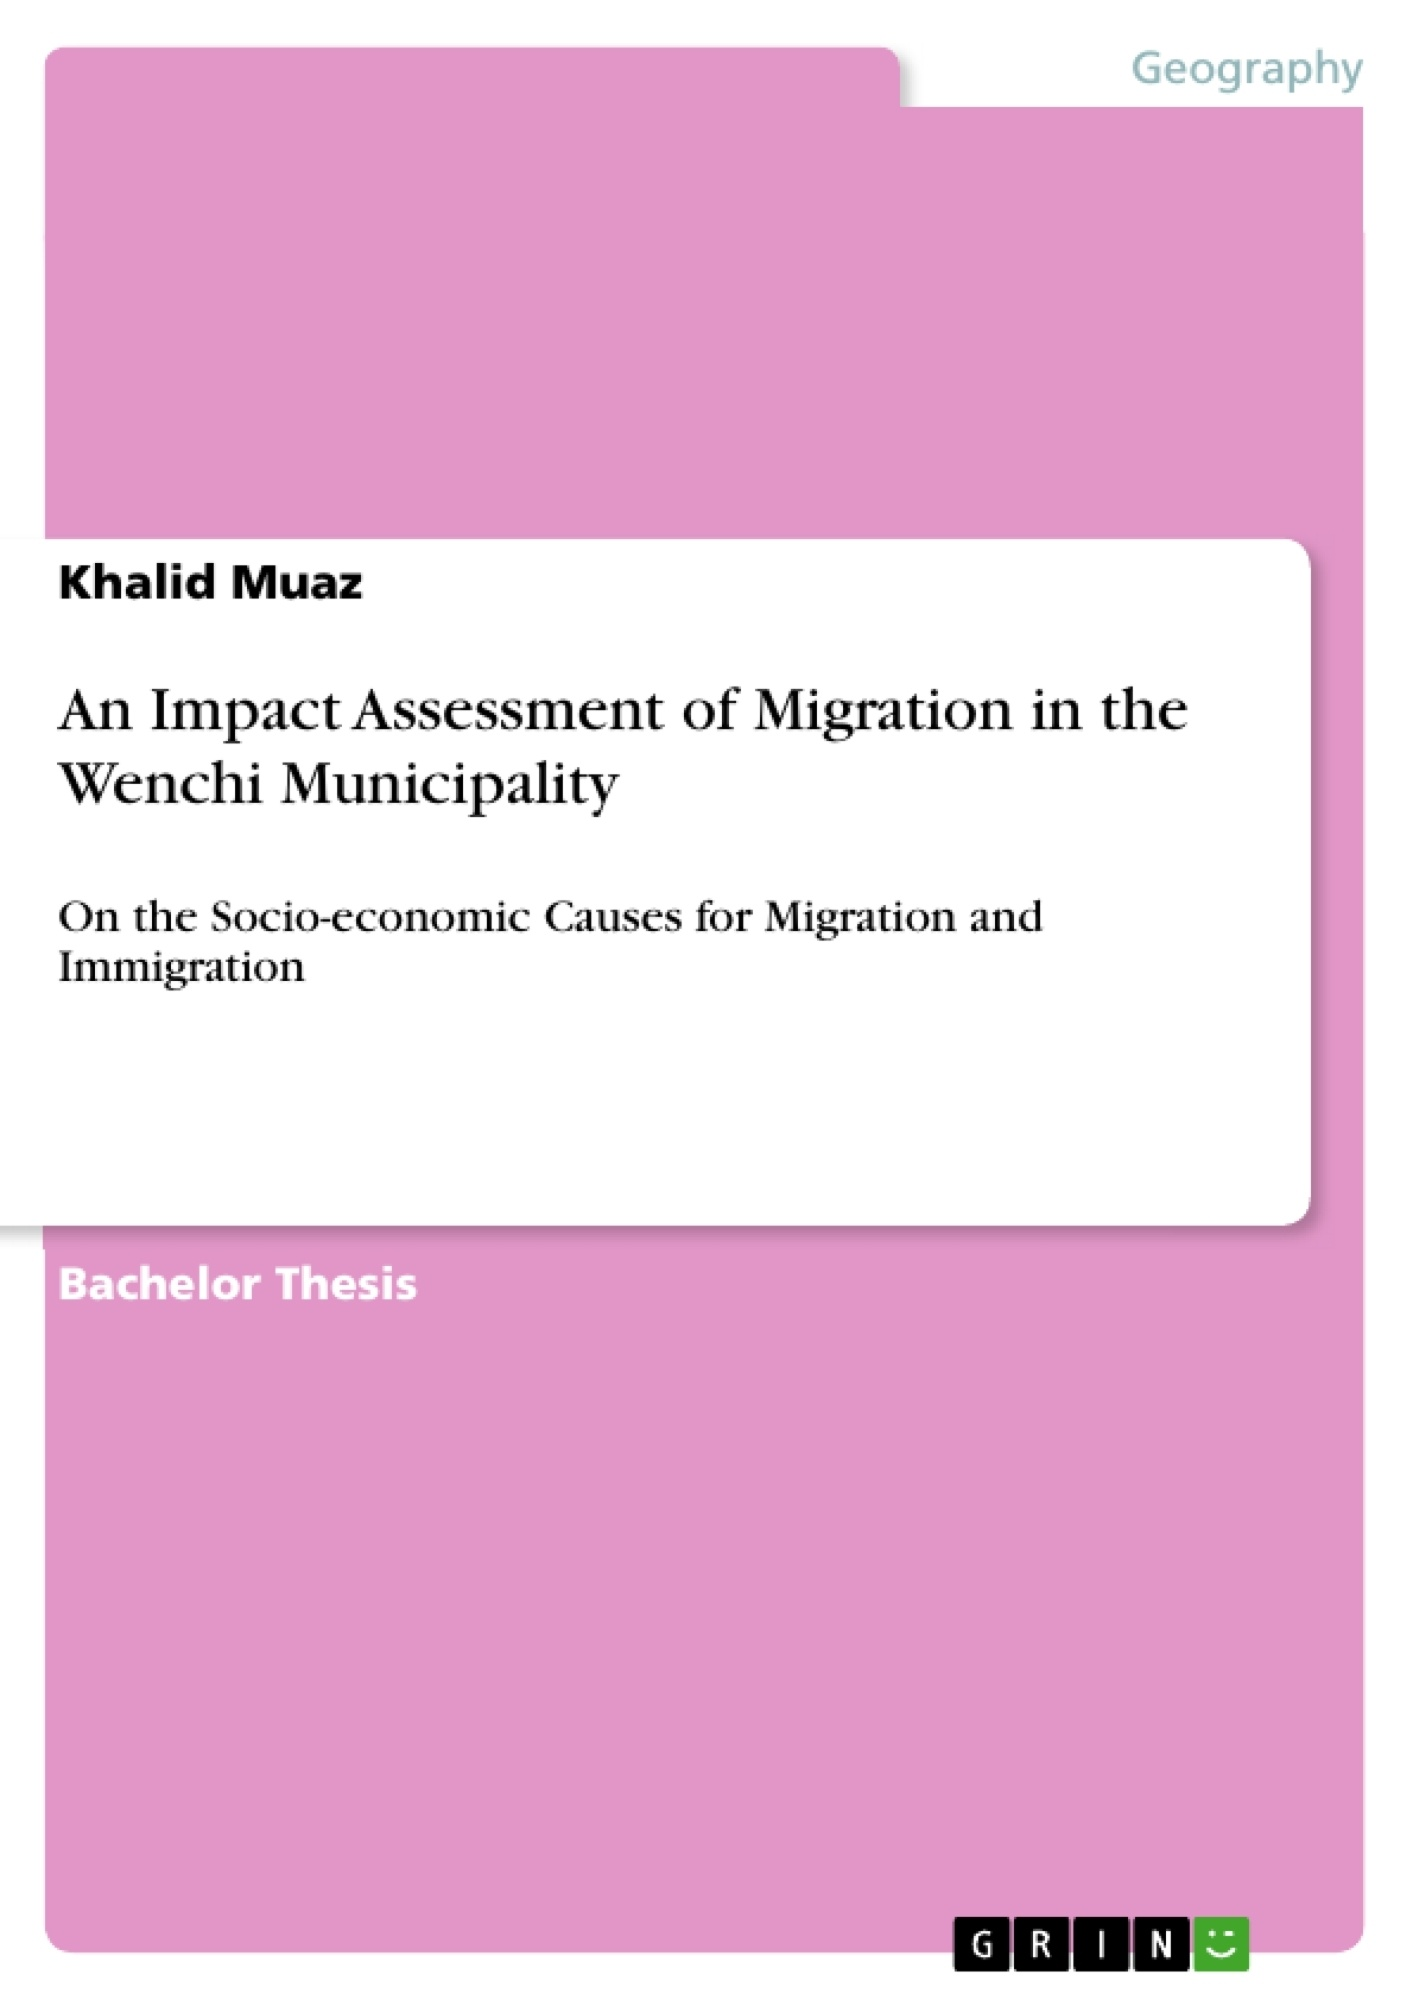 Title: An Impact Assessment of Migration in the Wenchi Municipality